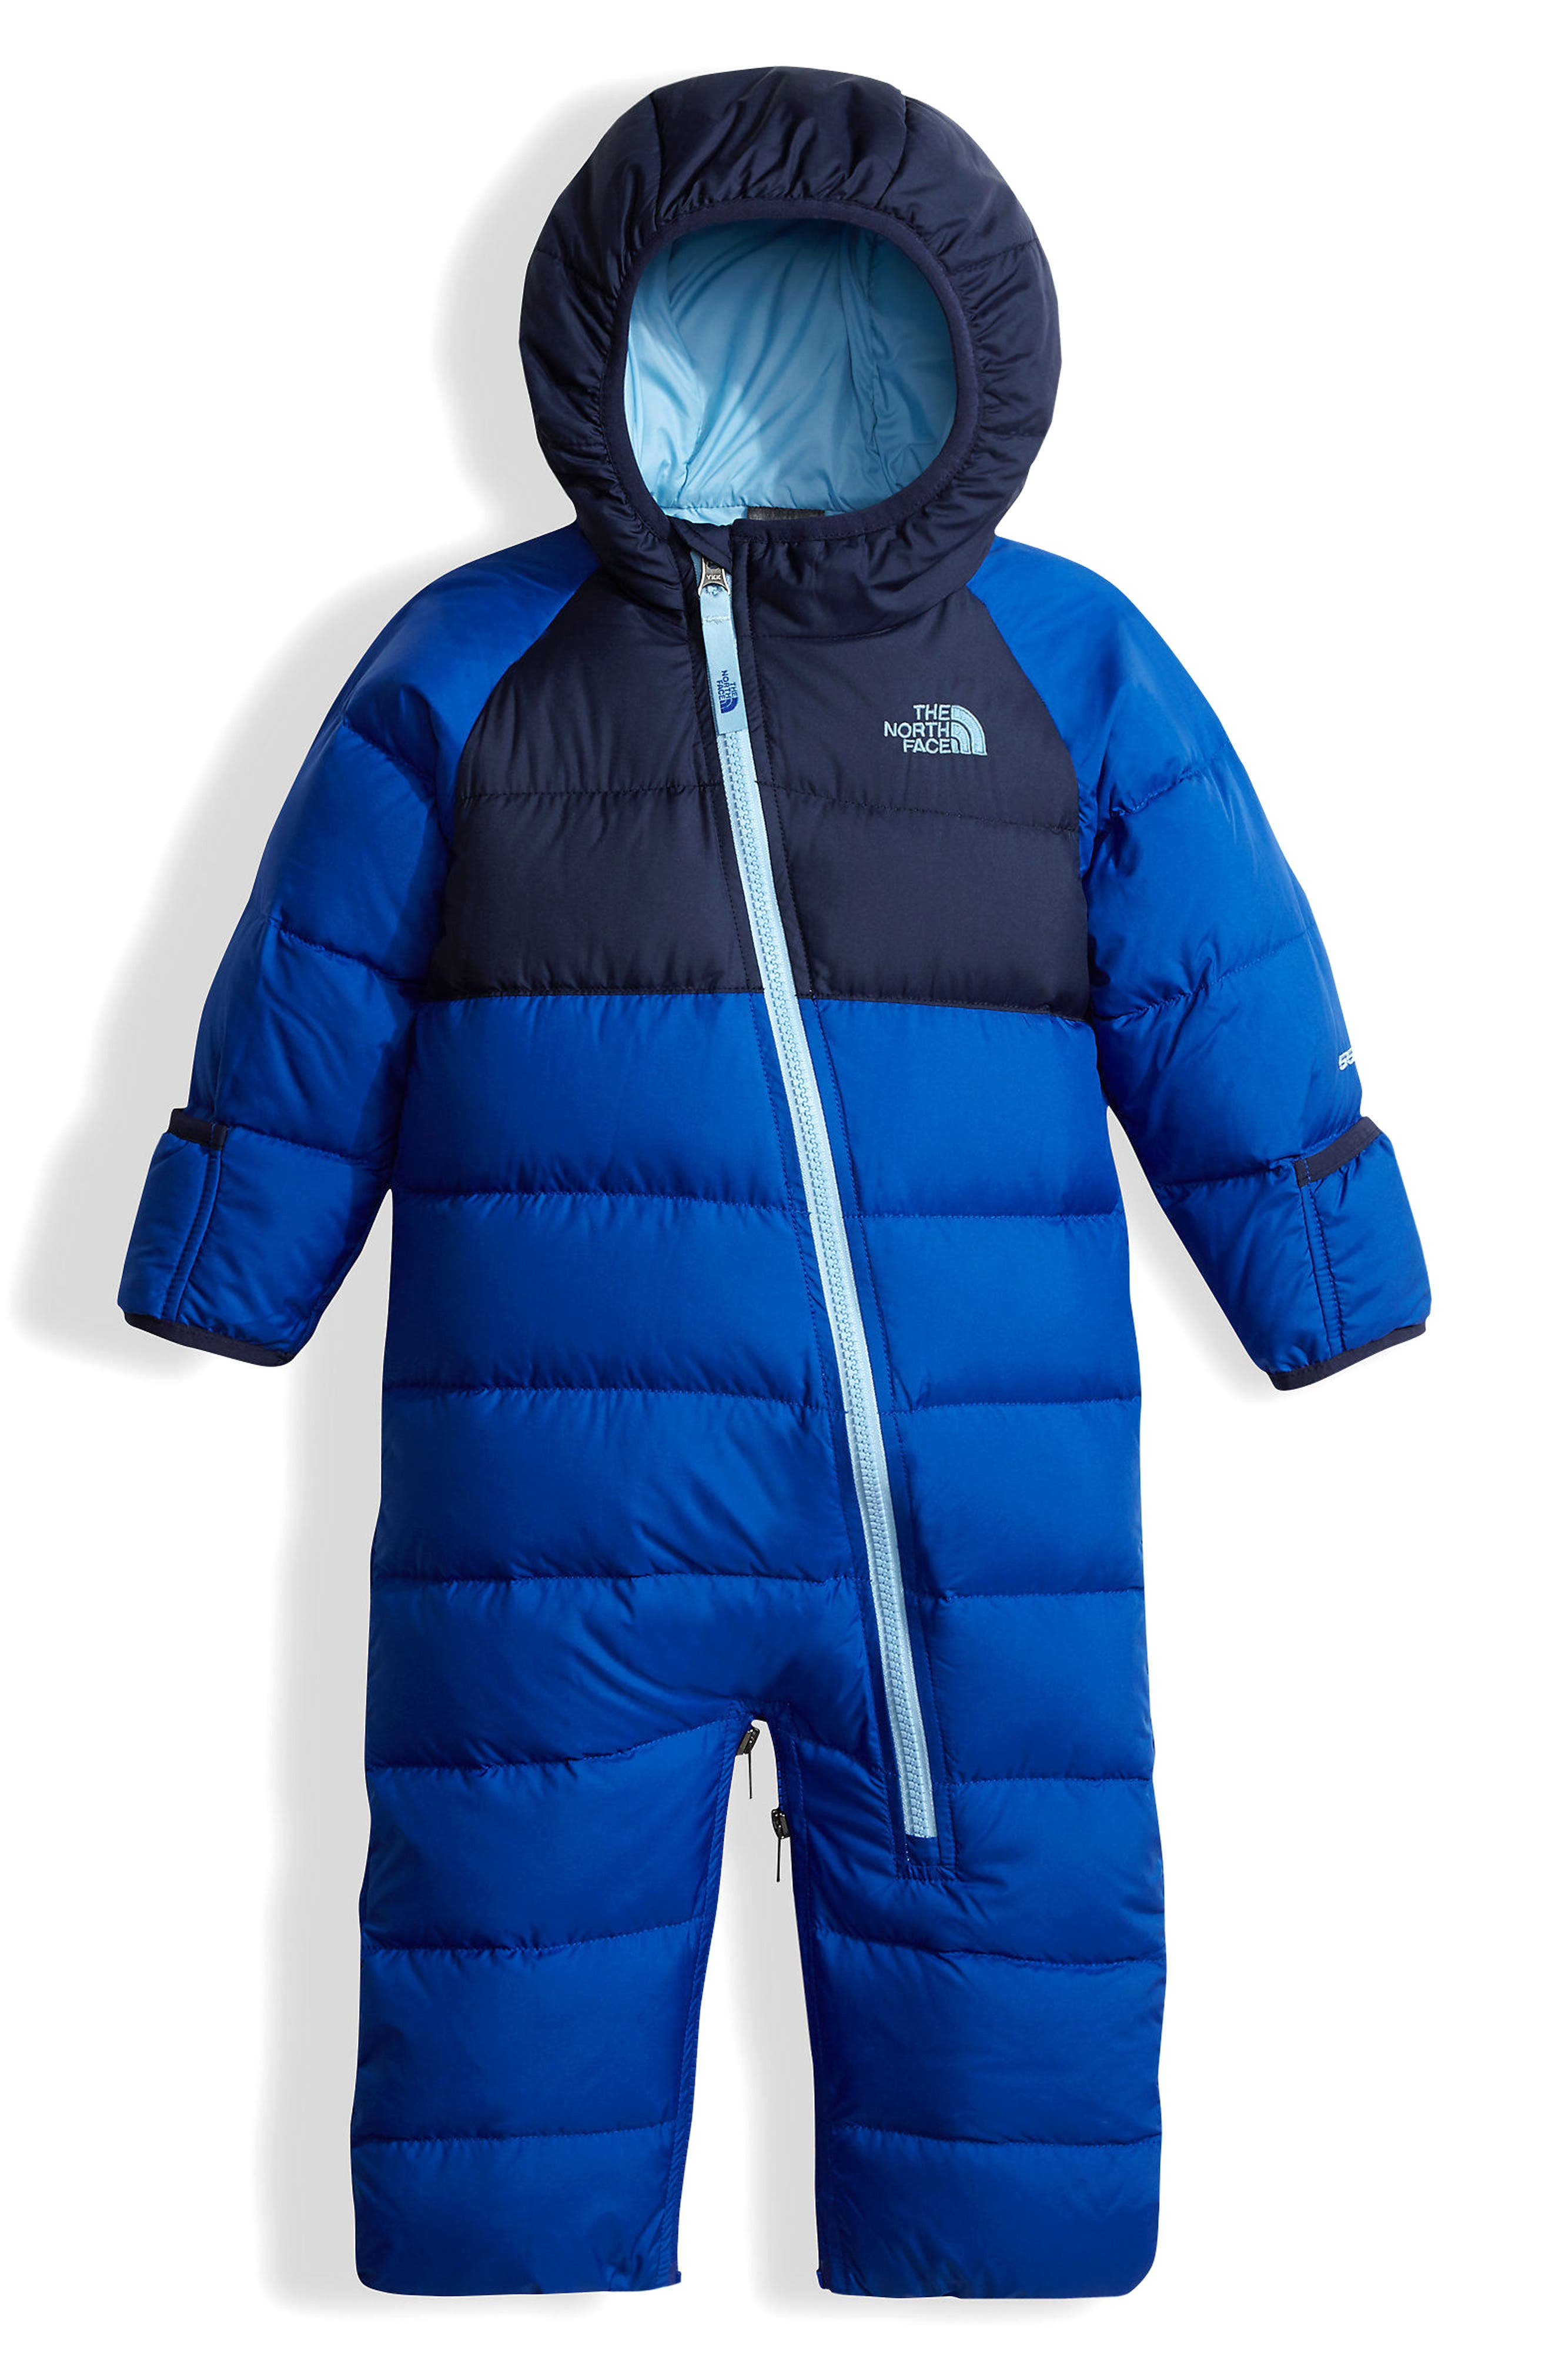 Alternate Image 1 Selected - The North Face Lil' Snuggler Water Resistant Down Bunting (Baby Boys)